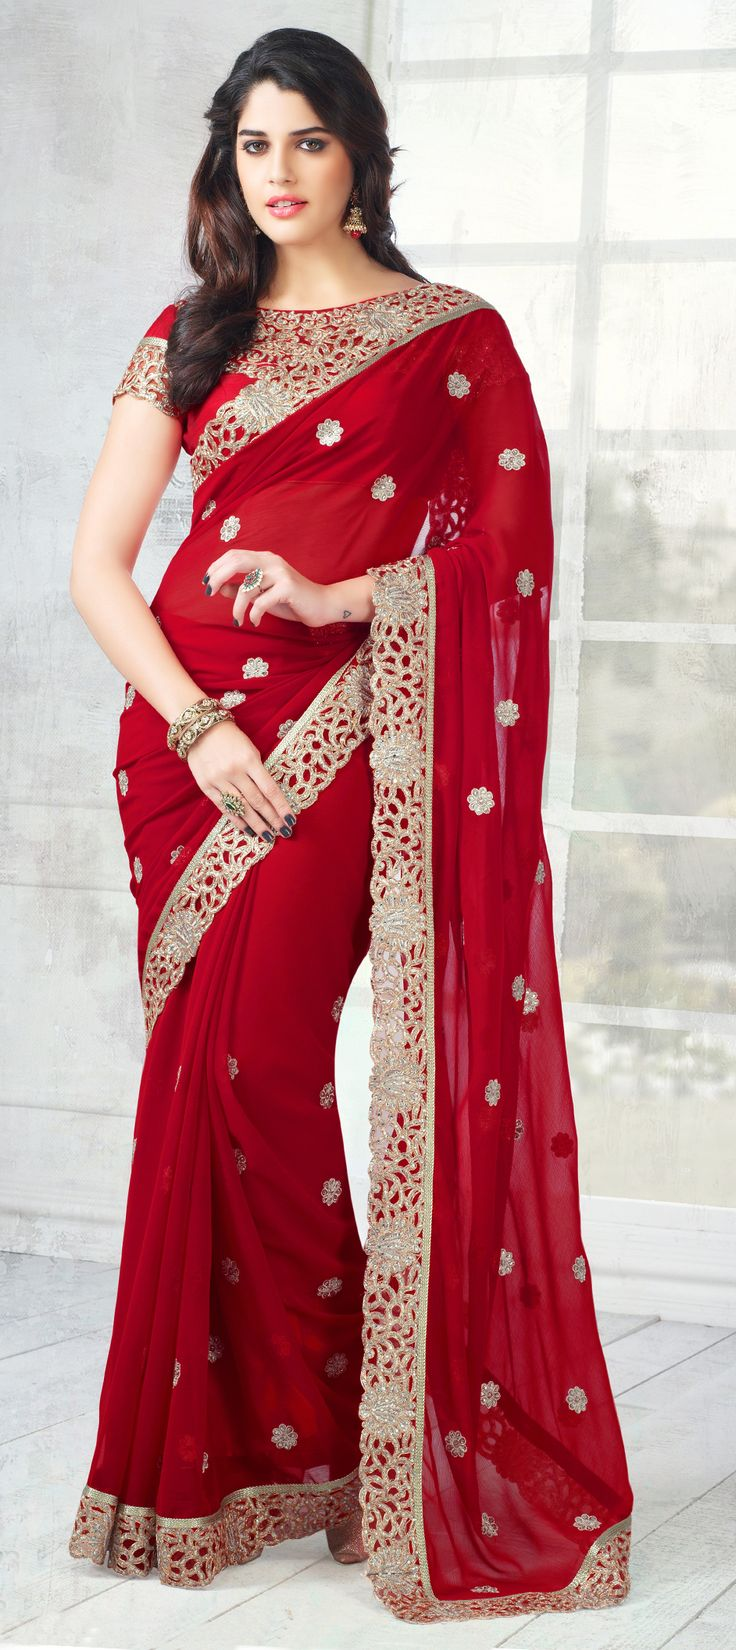 146715: Red and Maroon color family Saree with matching unstitched blouse.